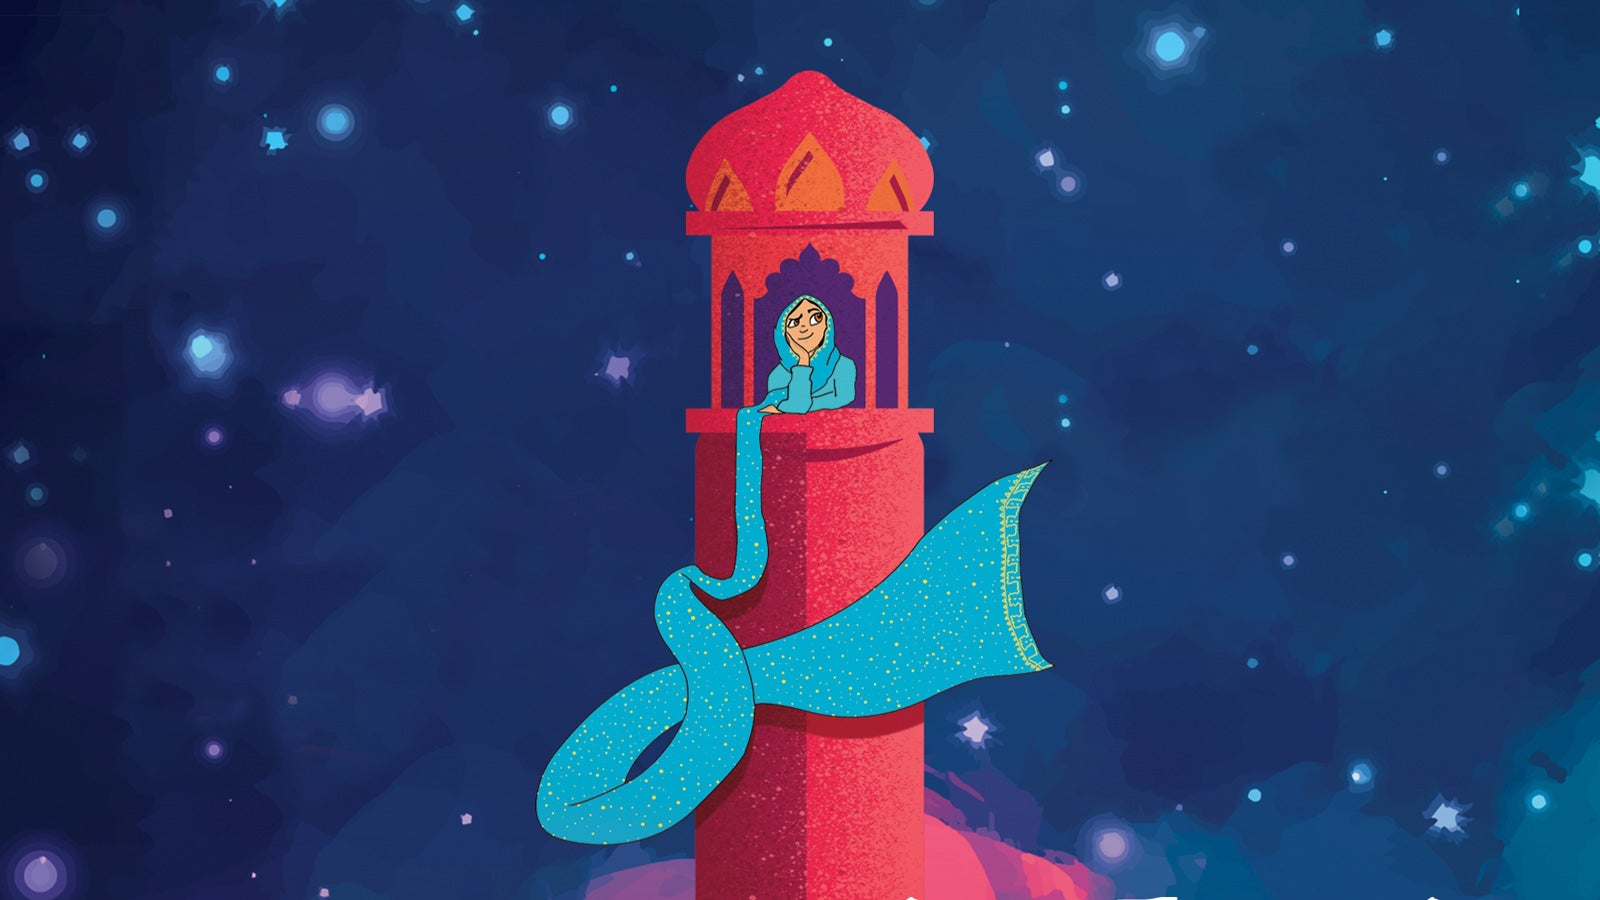 An illustration of Rumaysa staring out from a tower with her hijab flowing from the window, against a starry sky